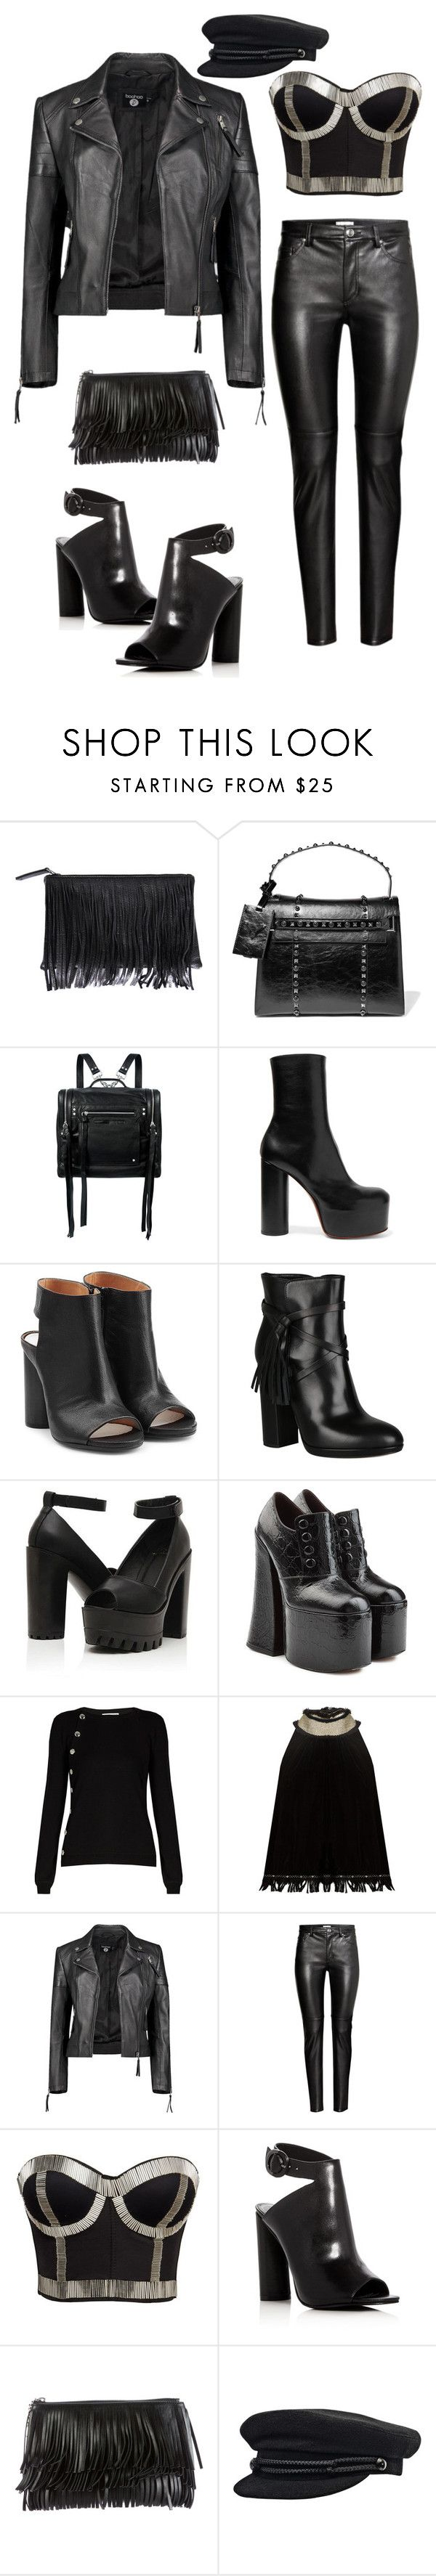 """""""Untitled #574"""" by christy-leigh-1 ❤ liked on Polyvore featuring Velvet by Graham & Spencer, Valentino, McQ by Alexander McQueen, Vetements, Maison Margiela, Atos Lombardini, Marc Jacobs, Altuzarra, Jupe By Jackie and Boohoo"""